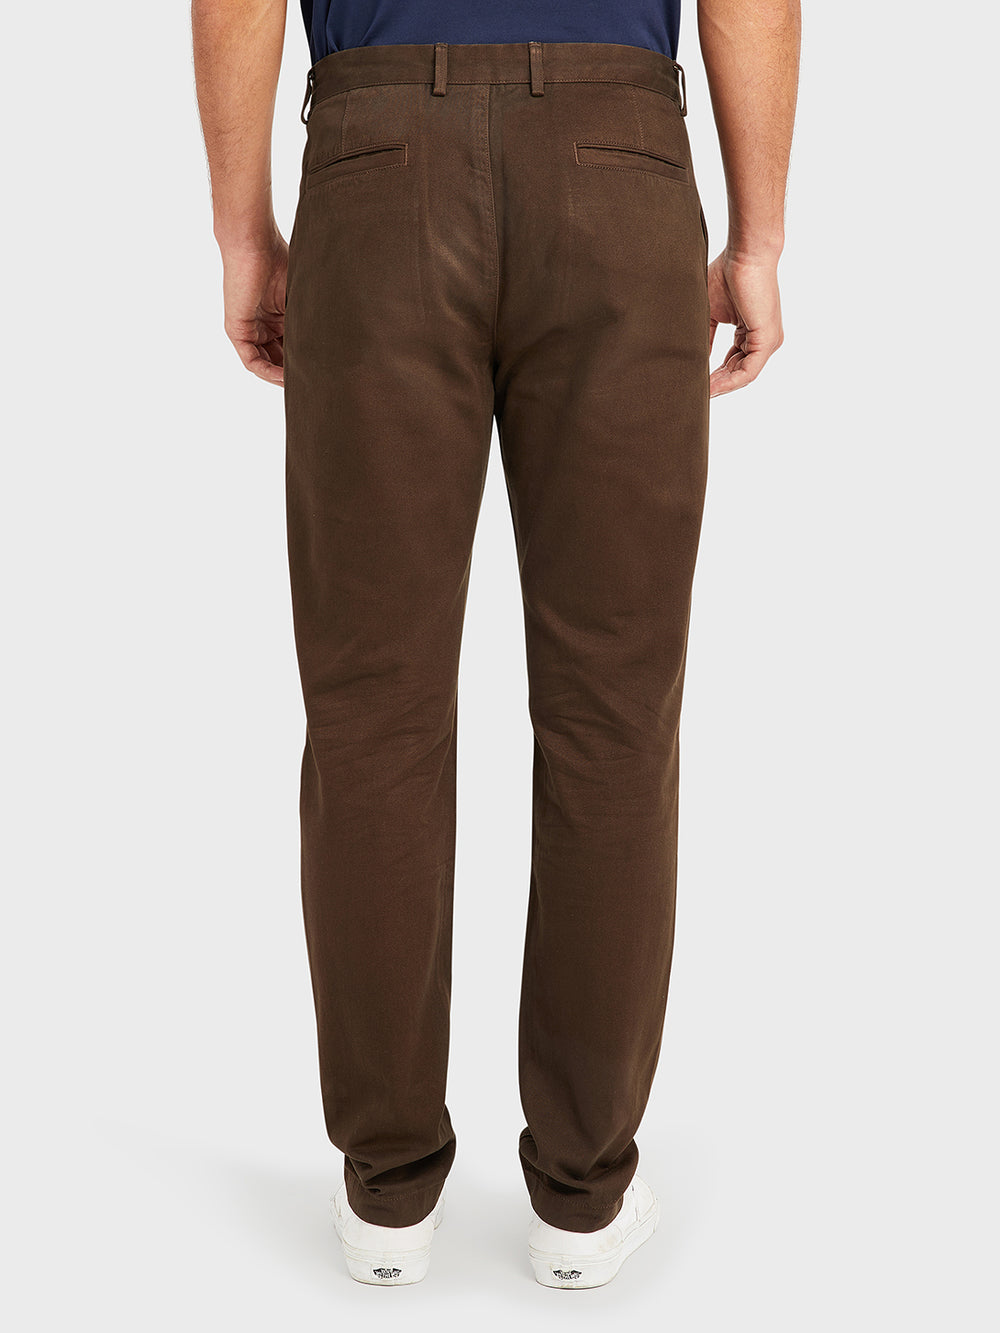 ONS RIDER CHINO Pre-shrunk Cotton DK BROWN PANTS